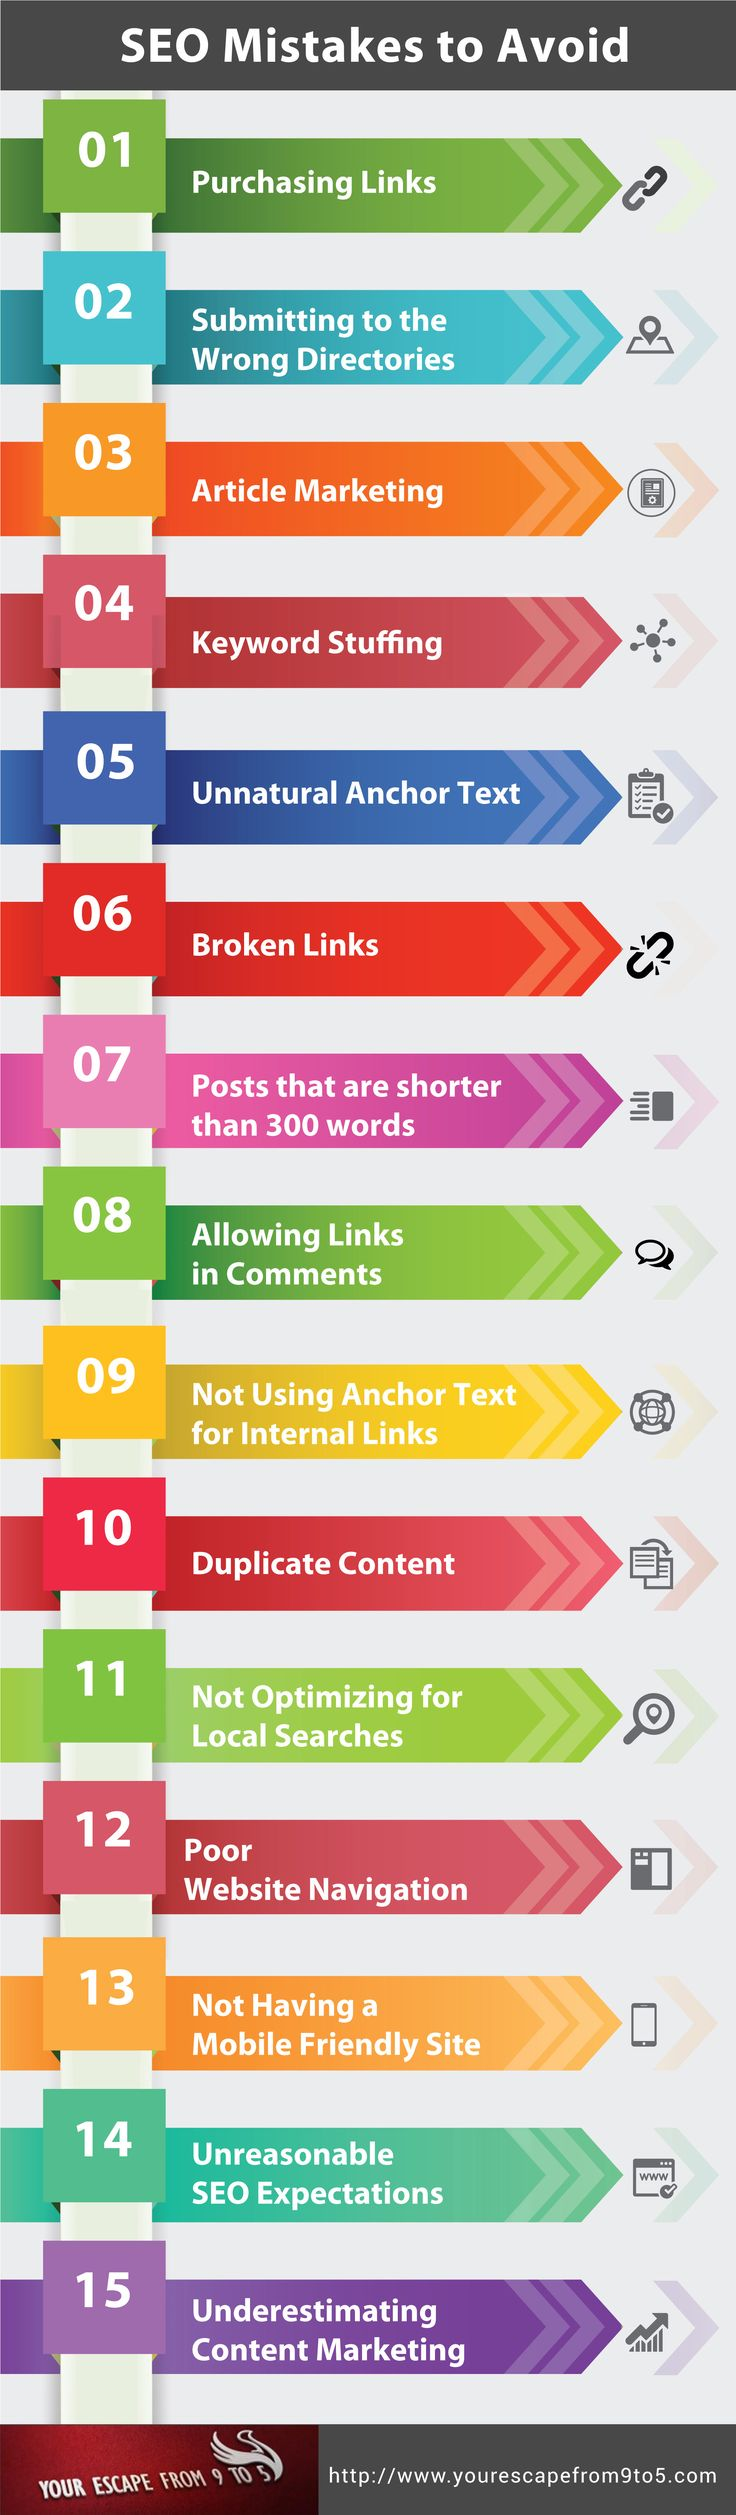 There are quite a few misconceptions about SEO, especially for a new blogger. We wanted to give you a glimpse of what can cost you in terms of rankings.